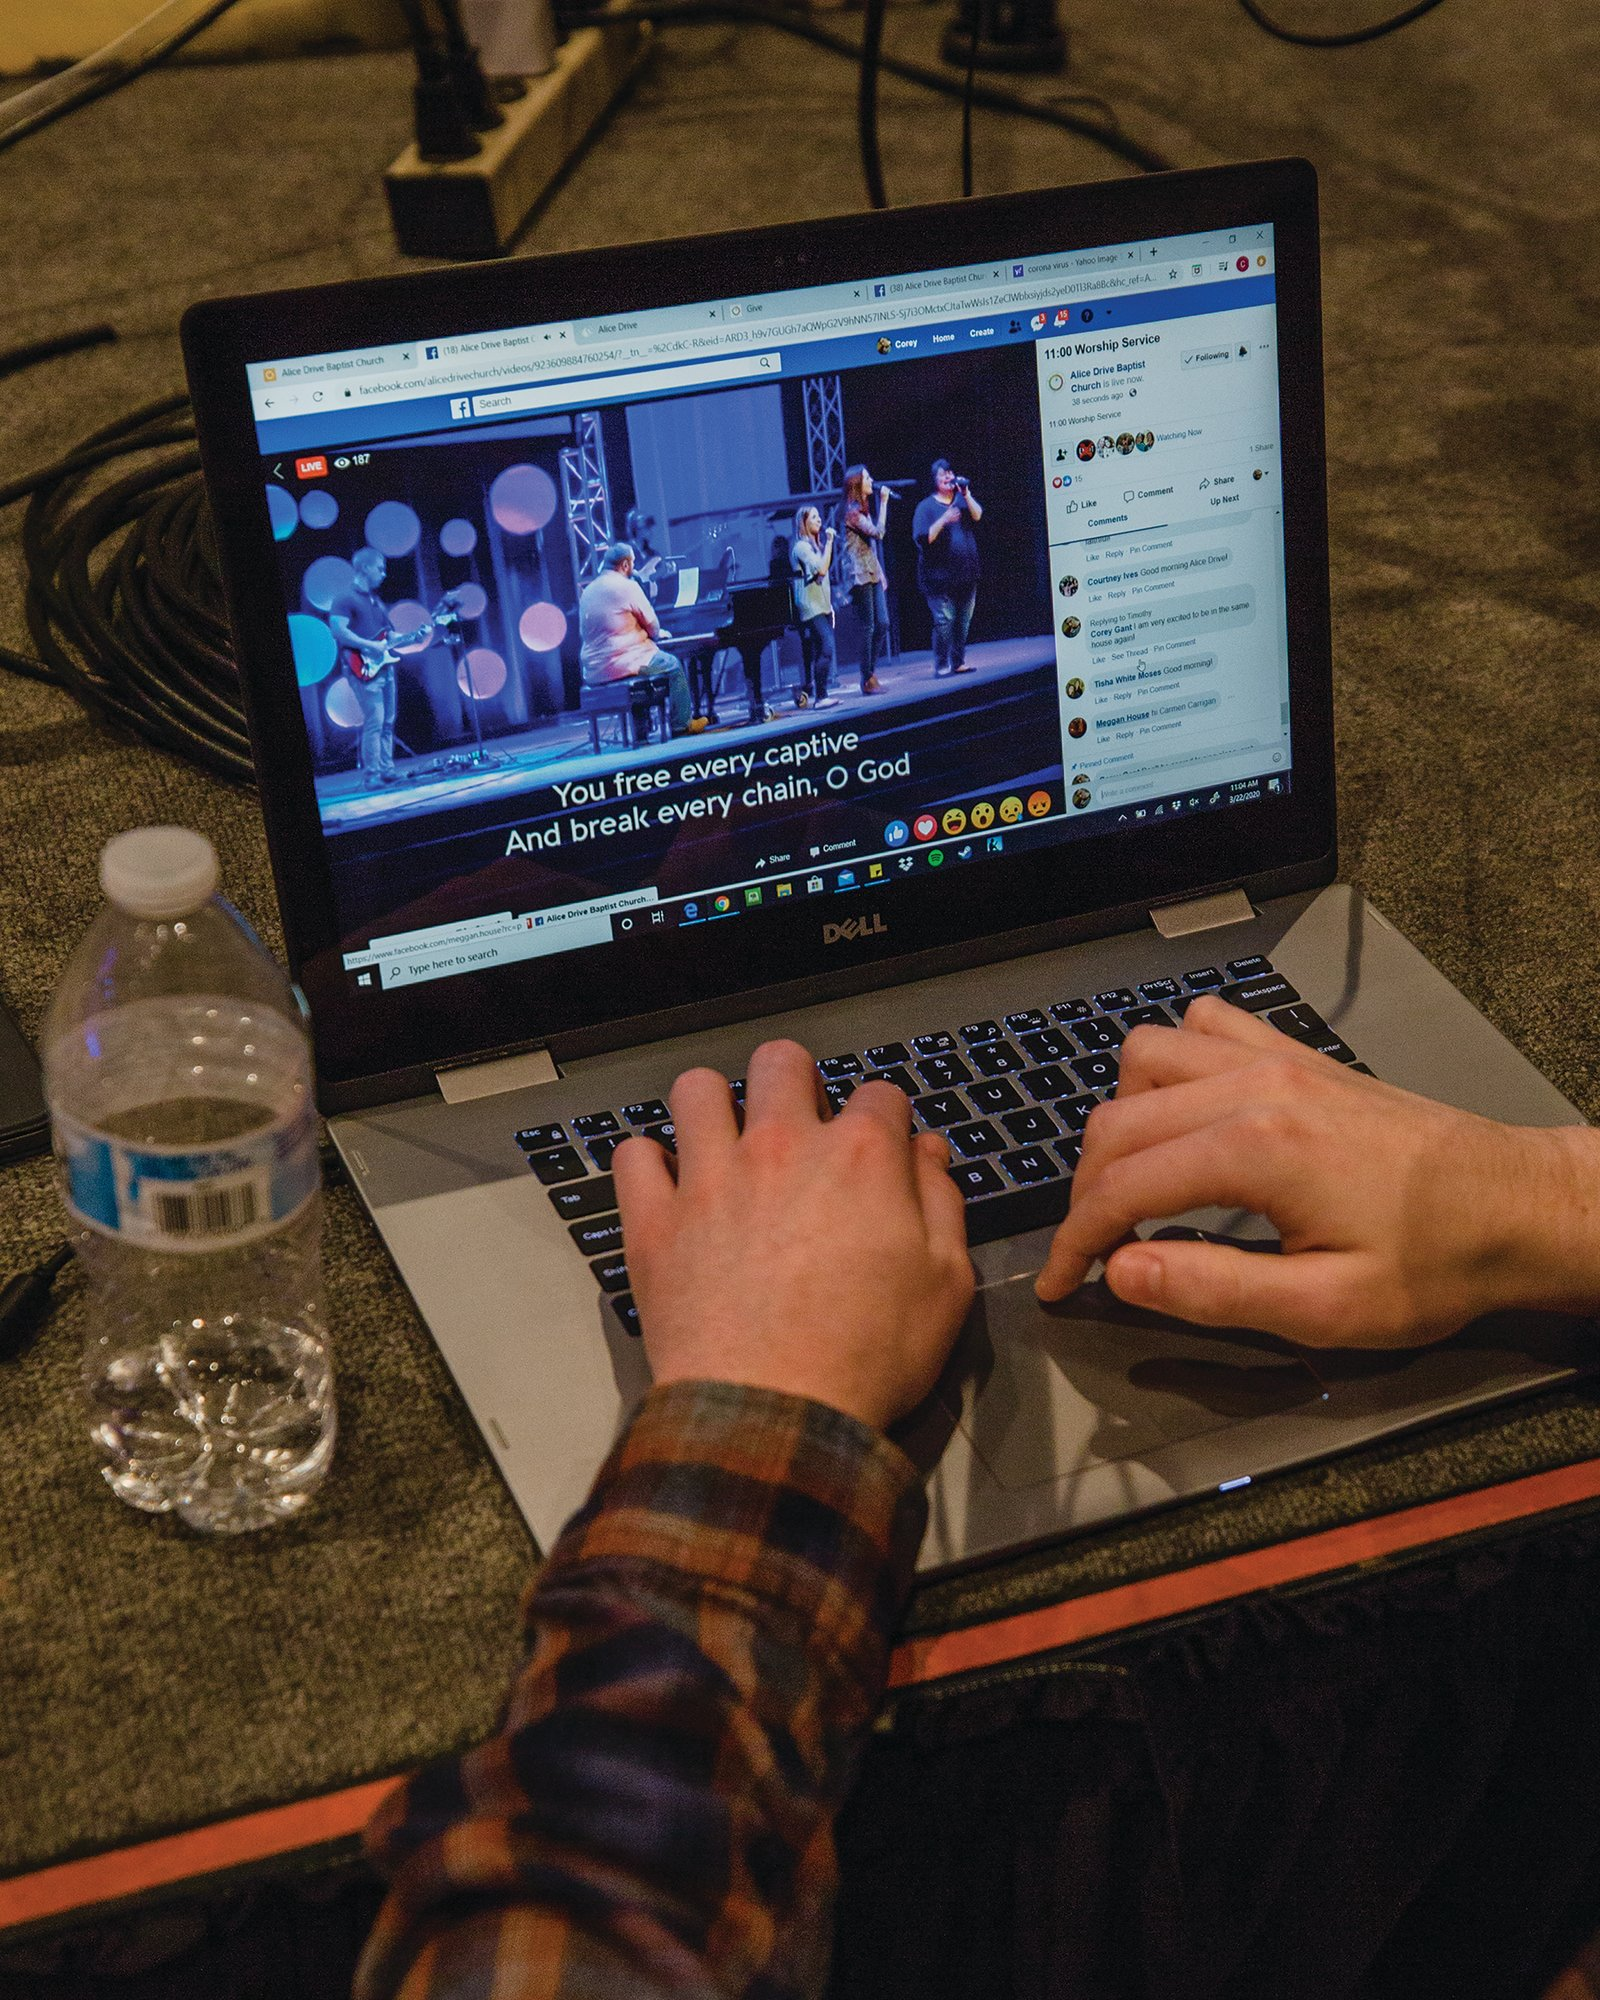 Alice Drive Baptist Church has been livestreaming services online to help stop the spread of COVID-19.